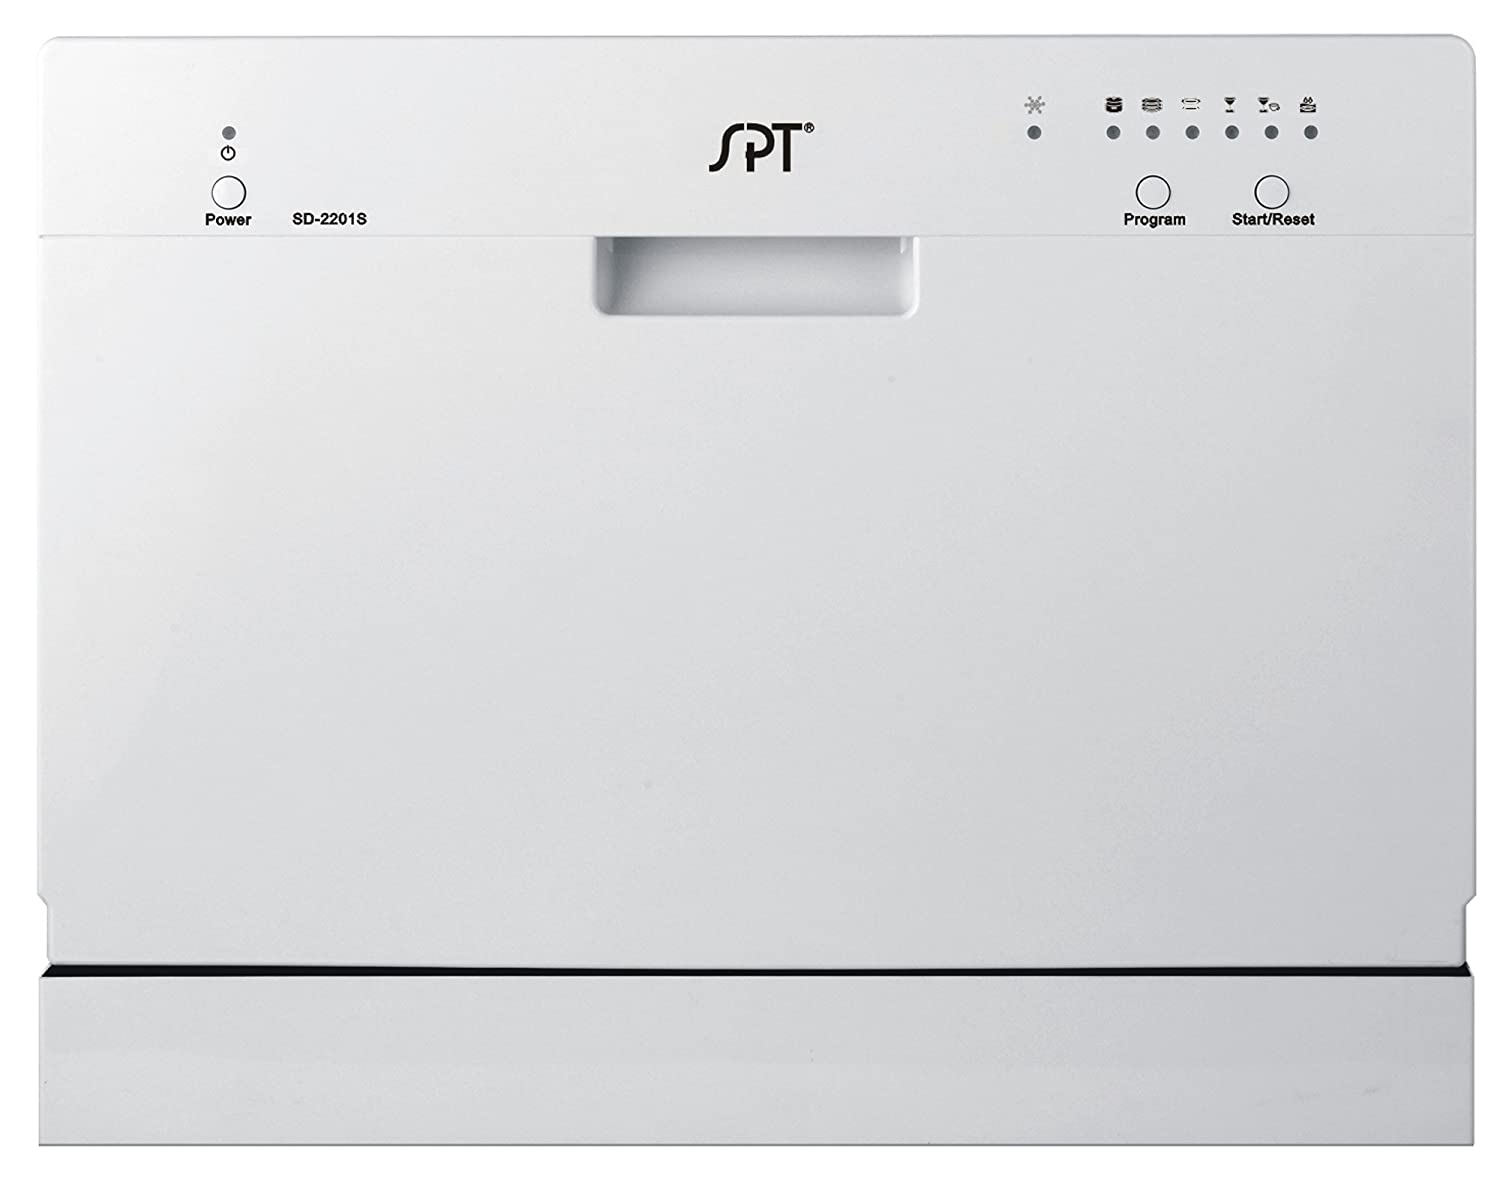 SPT Countertop Dishwasher, White SPT Appliance SD-2201W